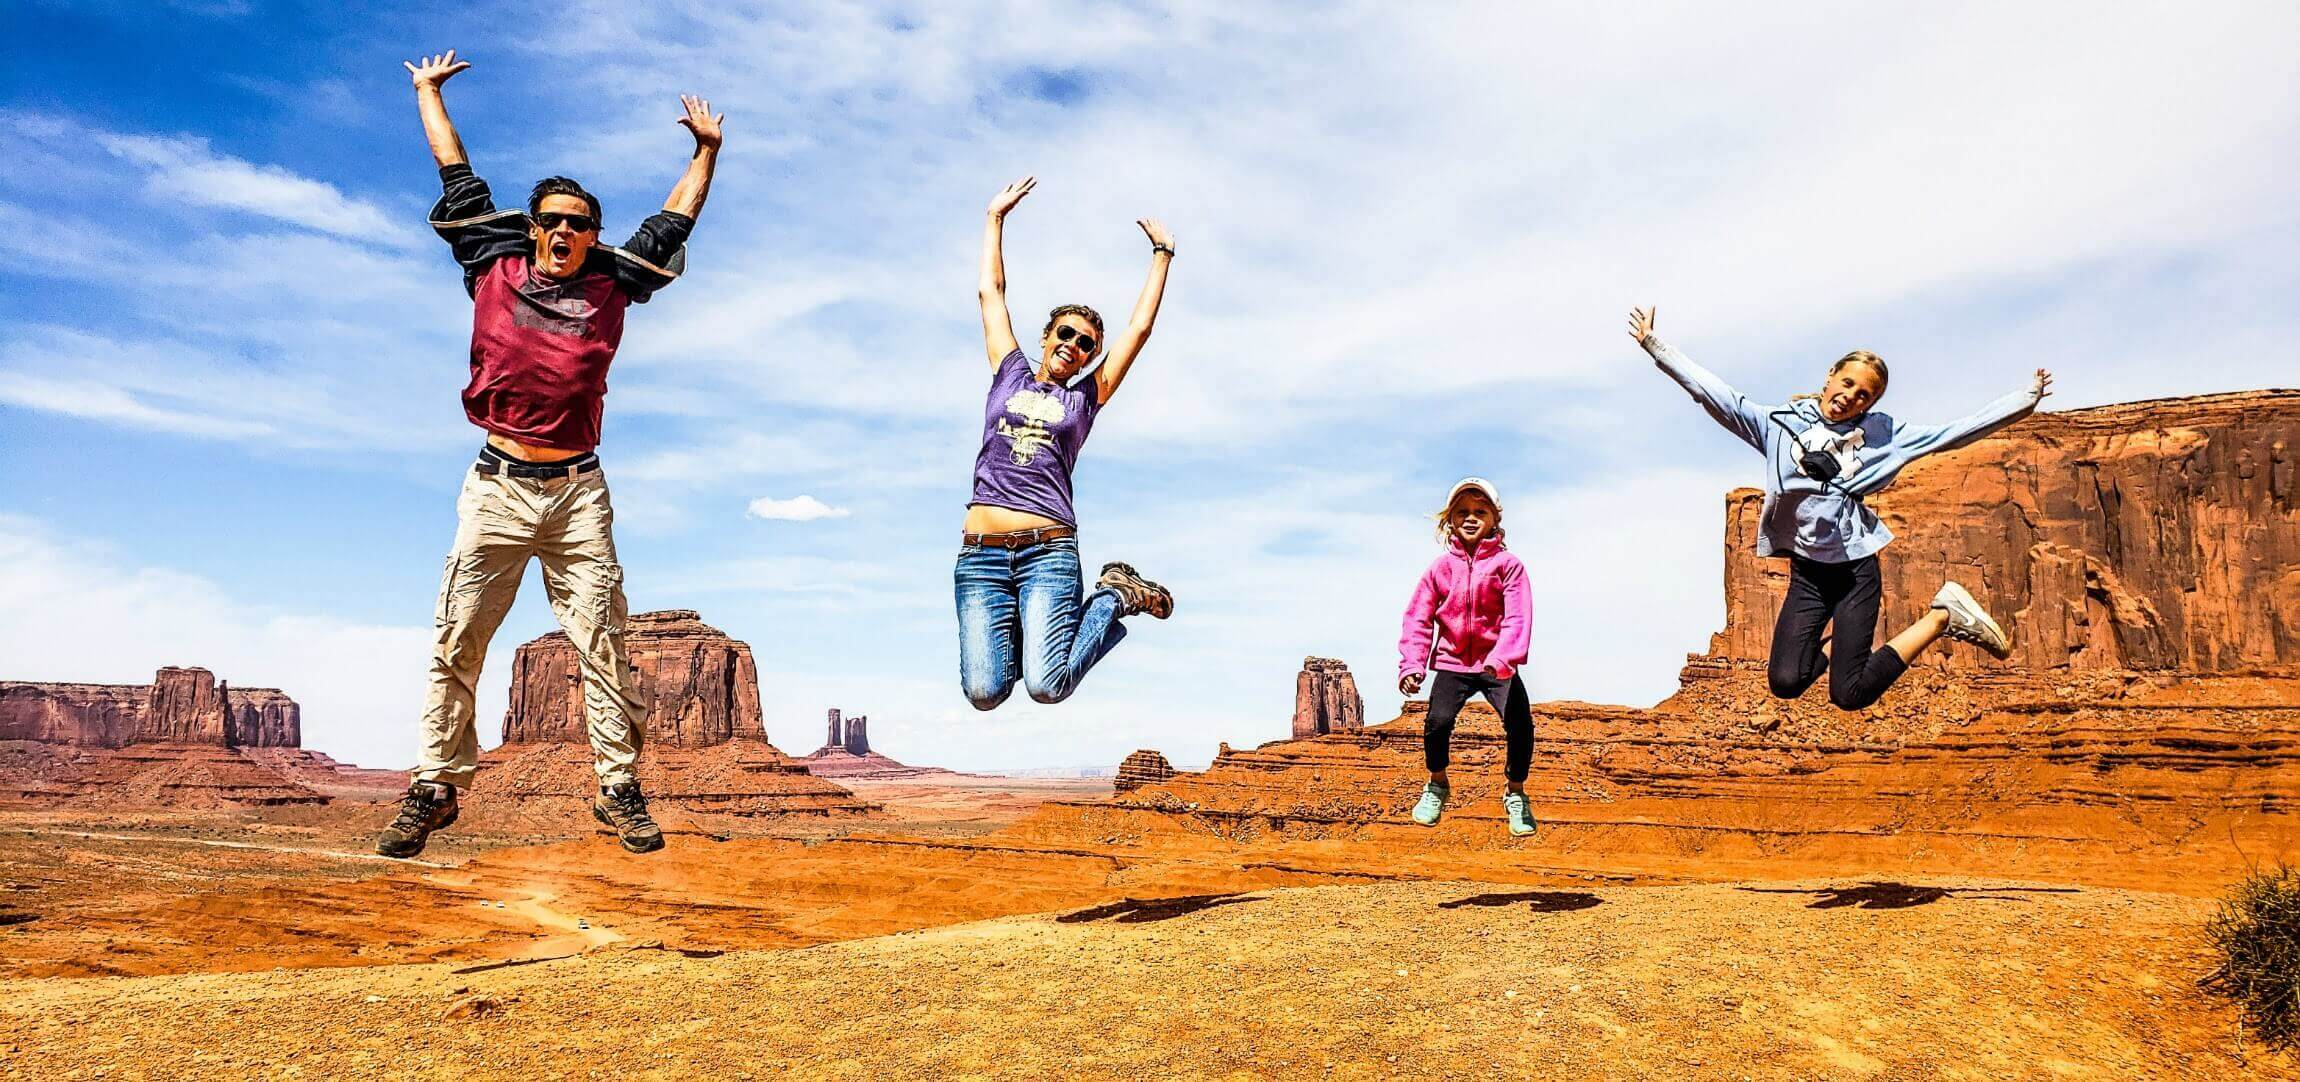 Show #012 – Living Your Family's Dreams Through Travel with Caroline Makepeace, co-founder of Ytravel!